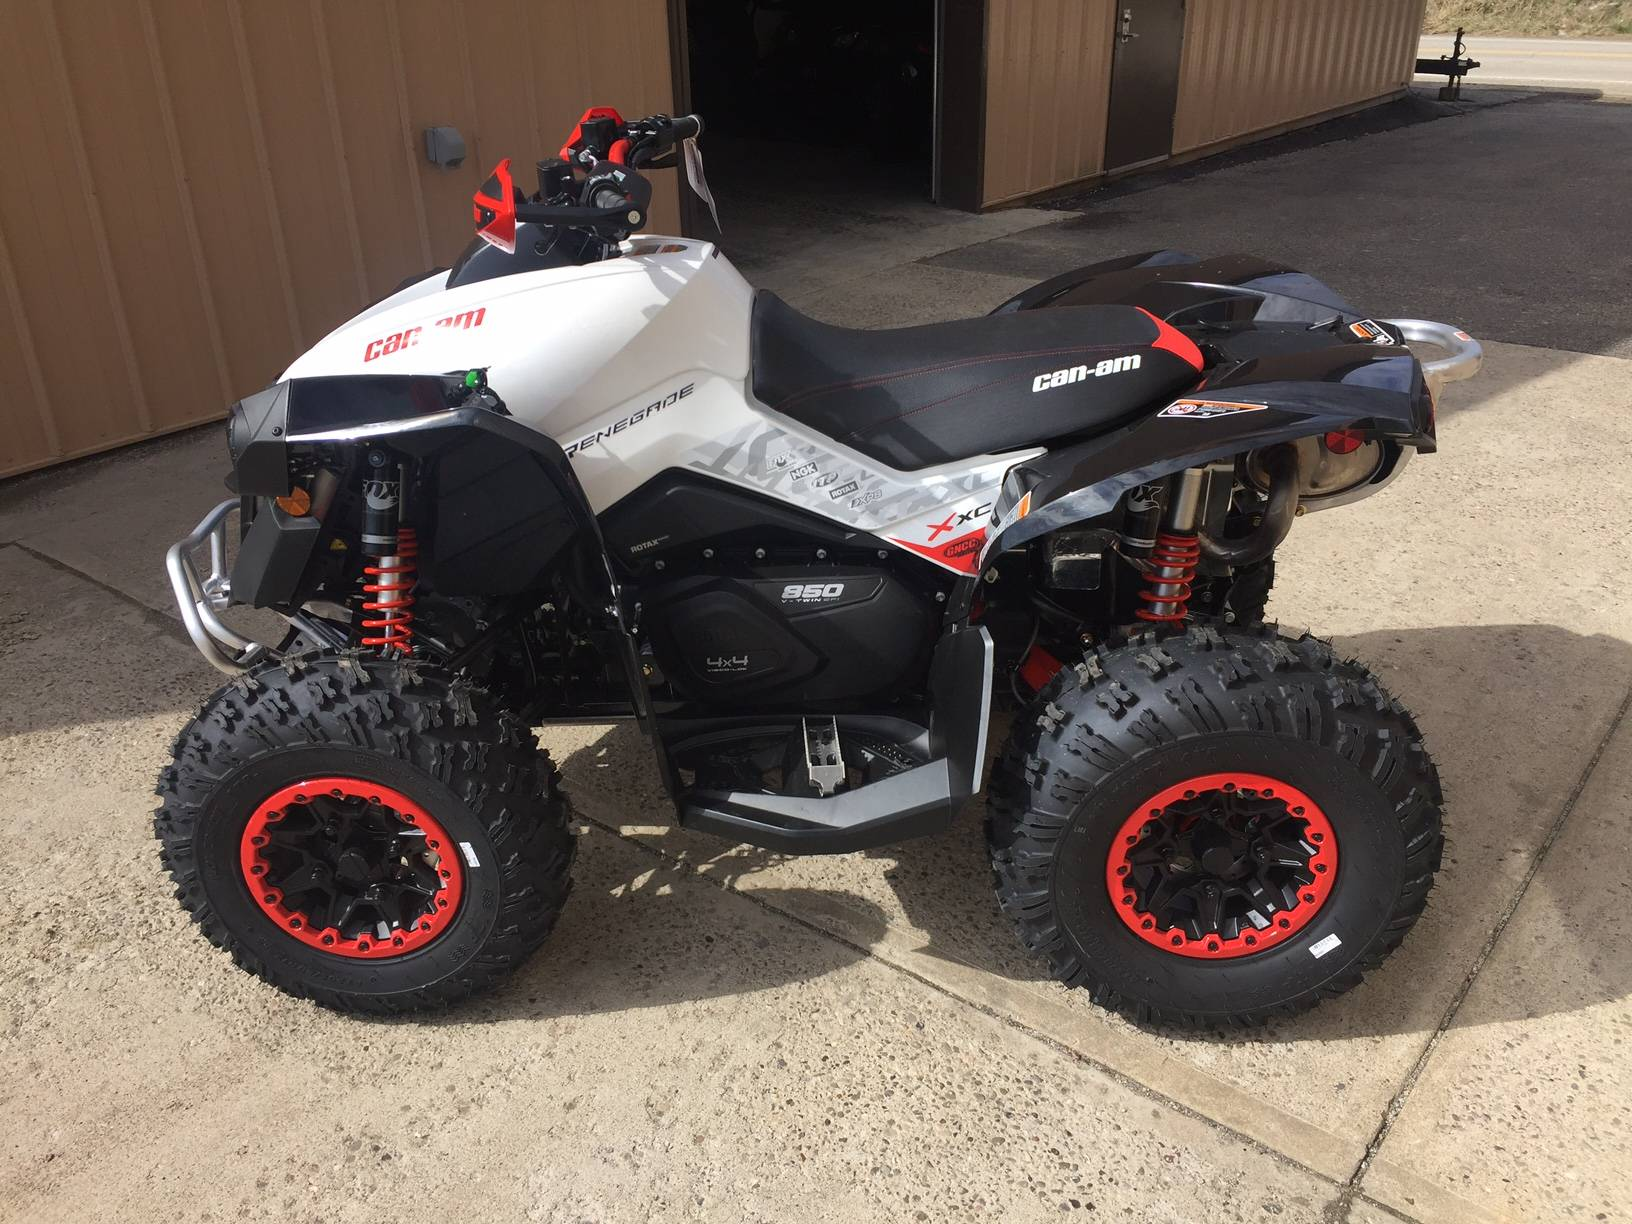 2018 can am renegade x xc 850 atvs claysville pennsylvania n a rh xtremeofwashingtoncounty com can am atv repair manuals Can-Am Four Wheelers